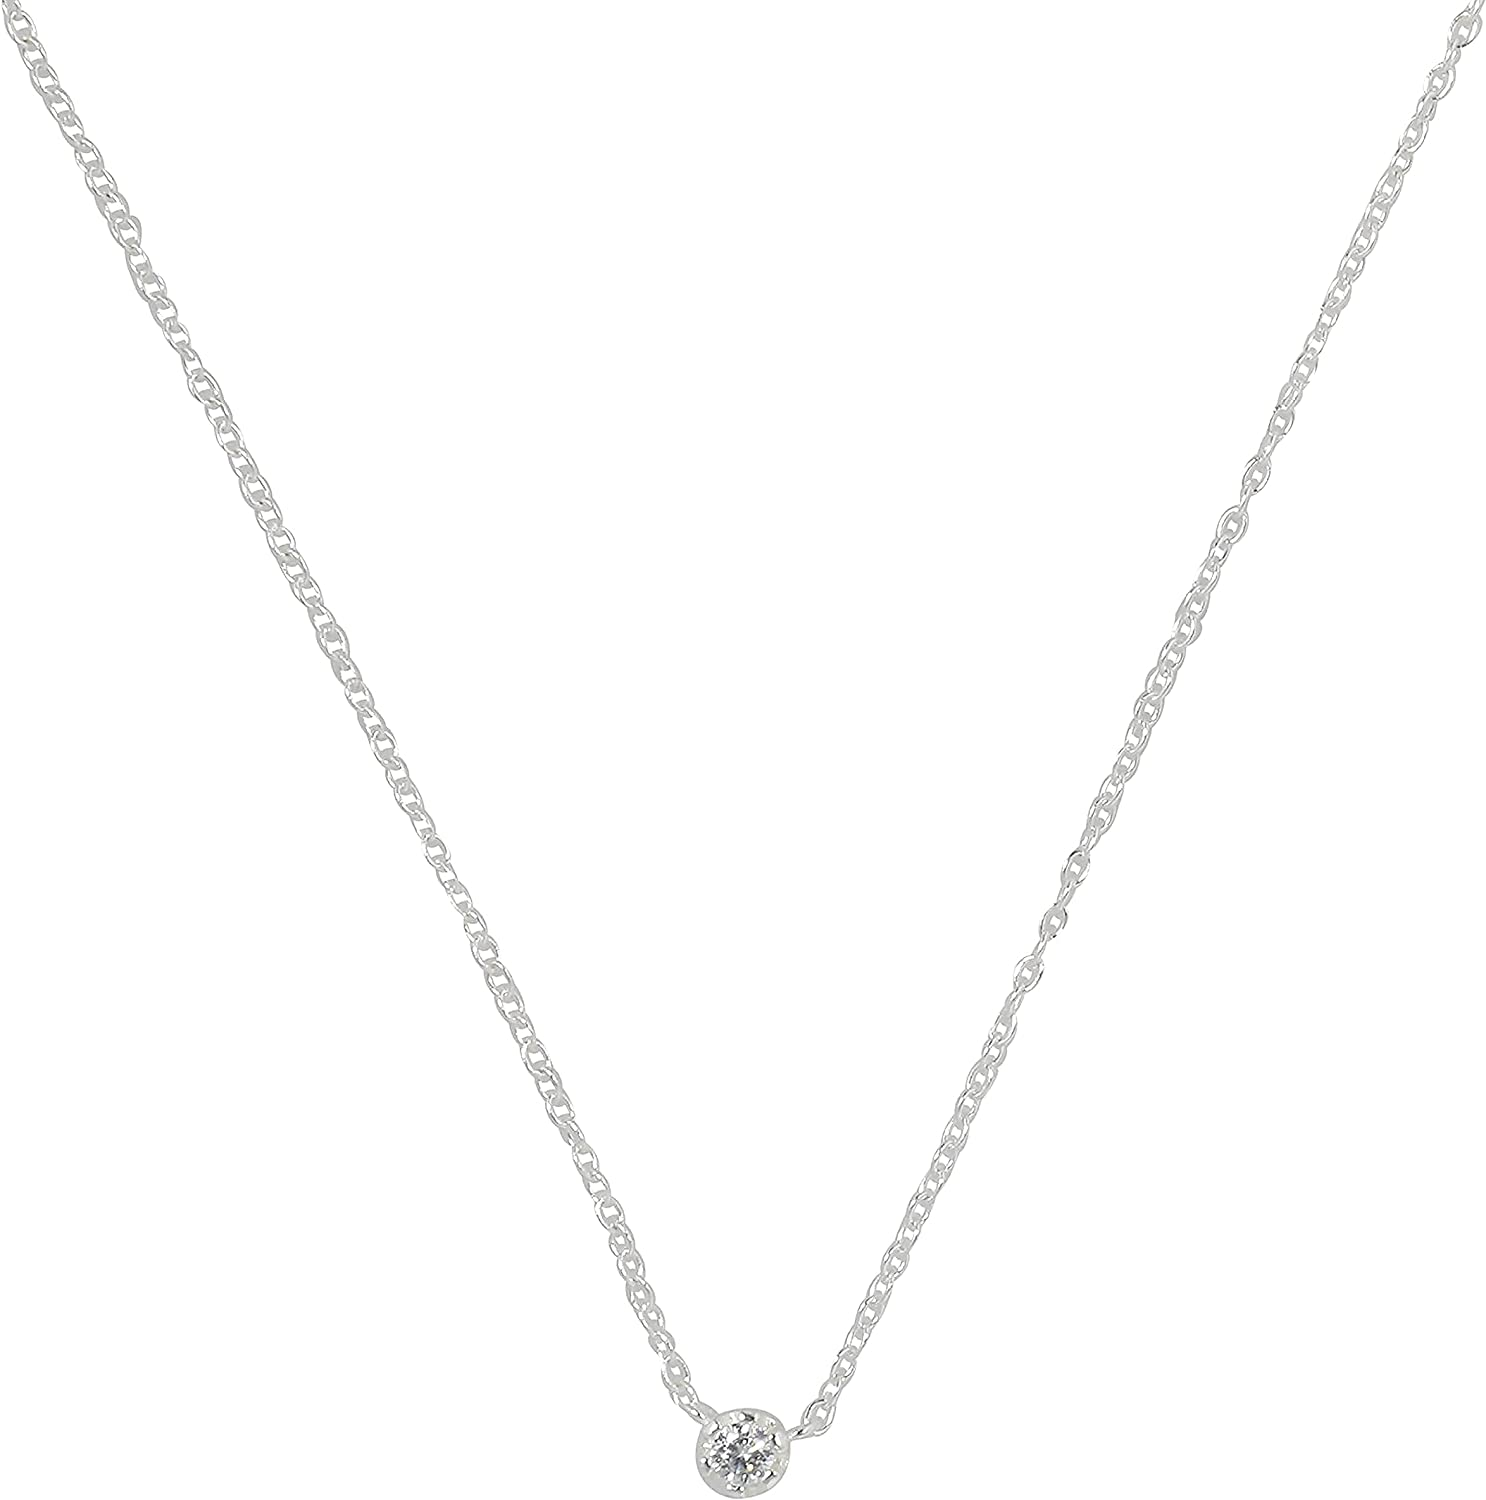 Dainty Silver Diamond Choker Ranking TOP3 Necklace - Raleigh Mall